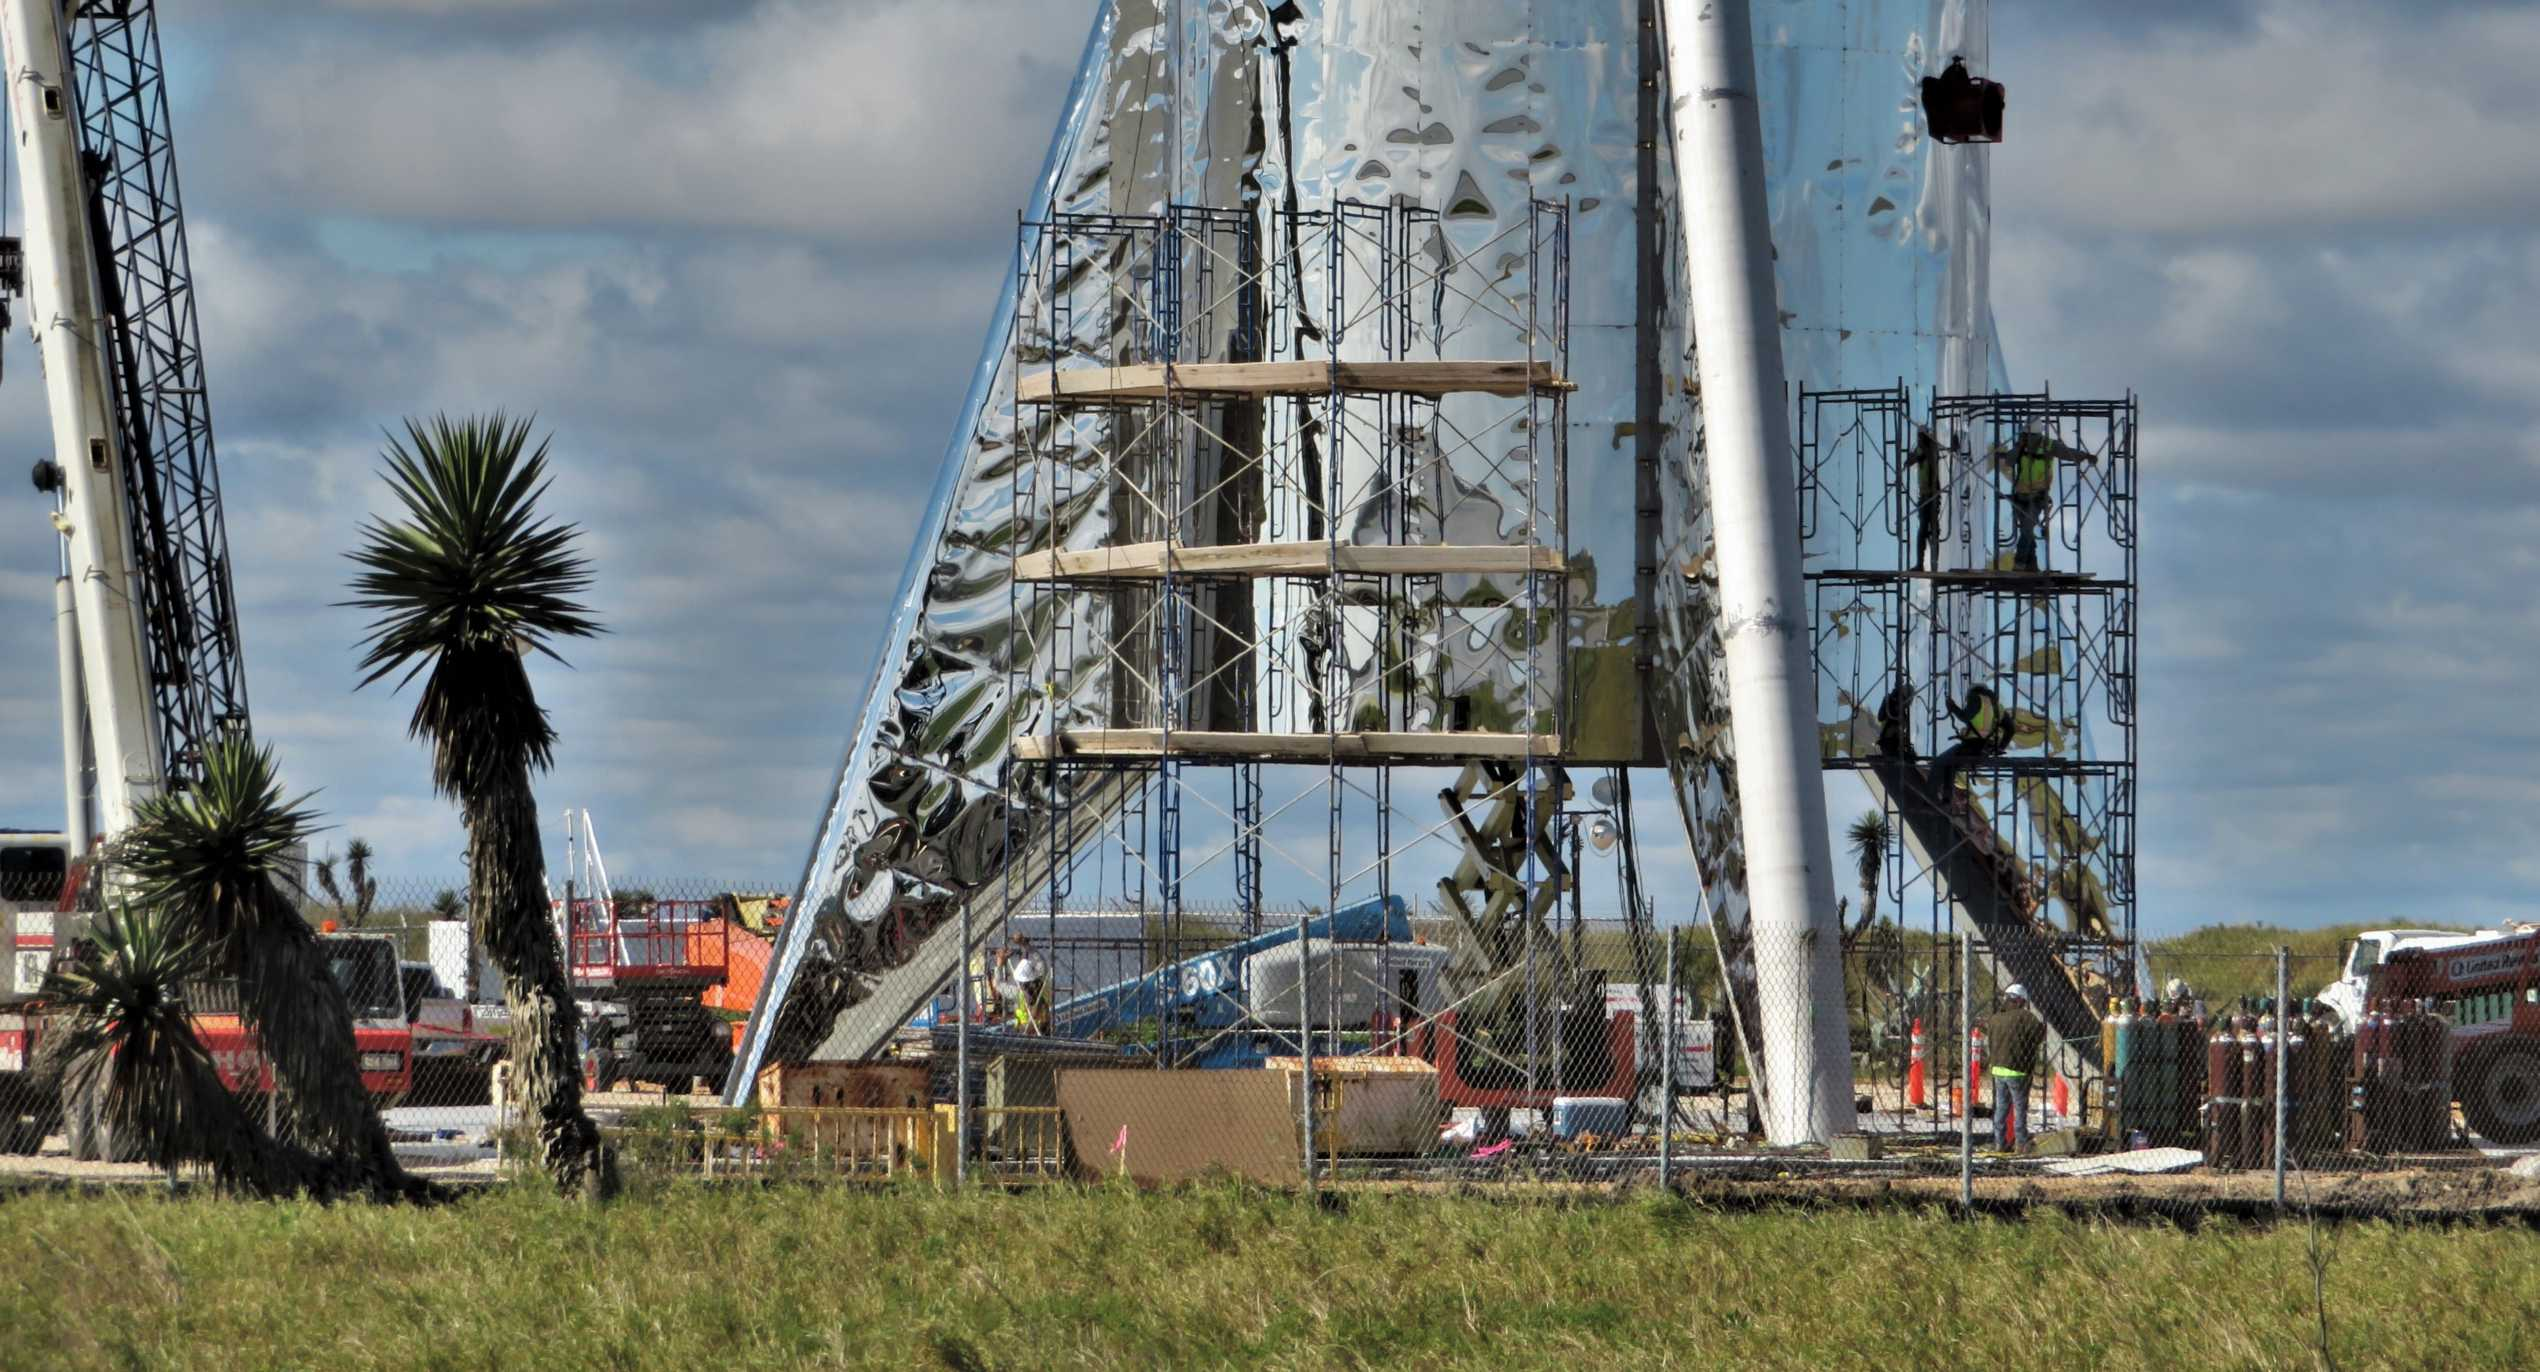 Boca Chica Starship dome work 012719 (NASASpaceflight – bocachicagal) 1 crop (c)